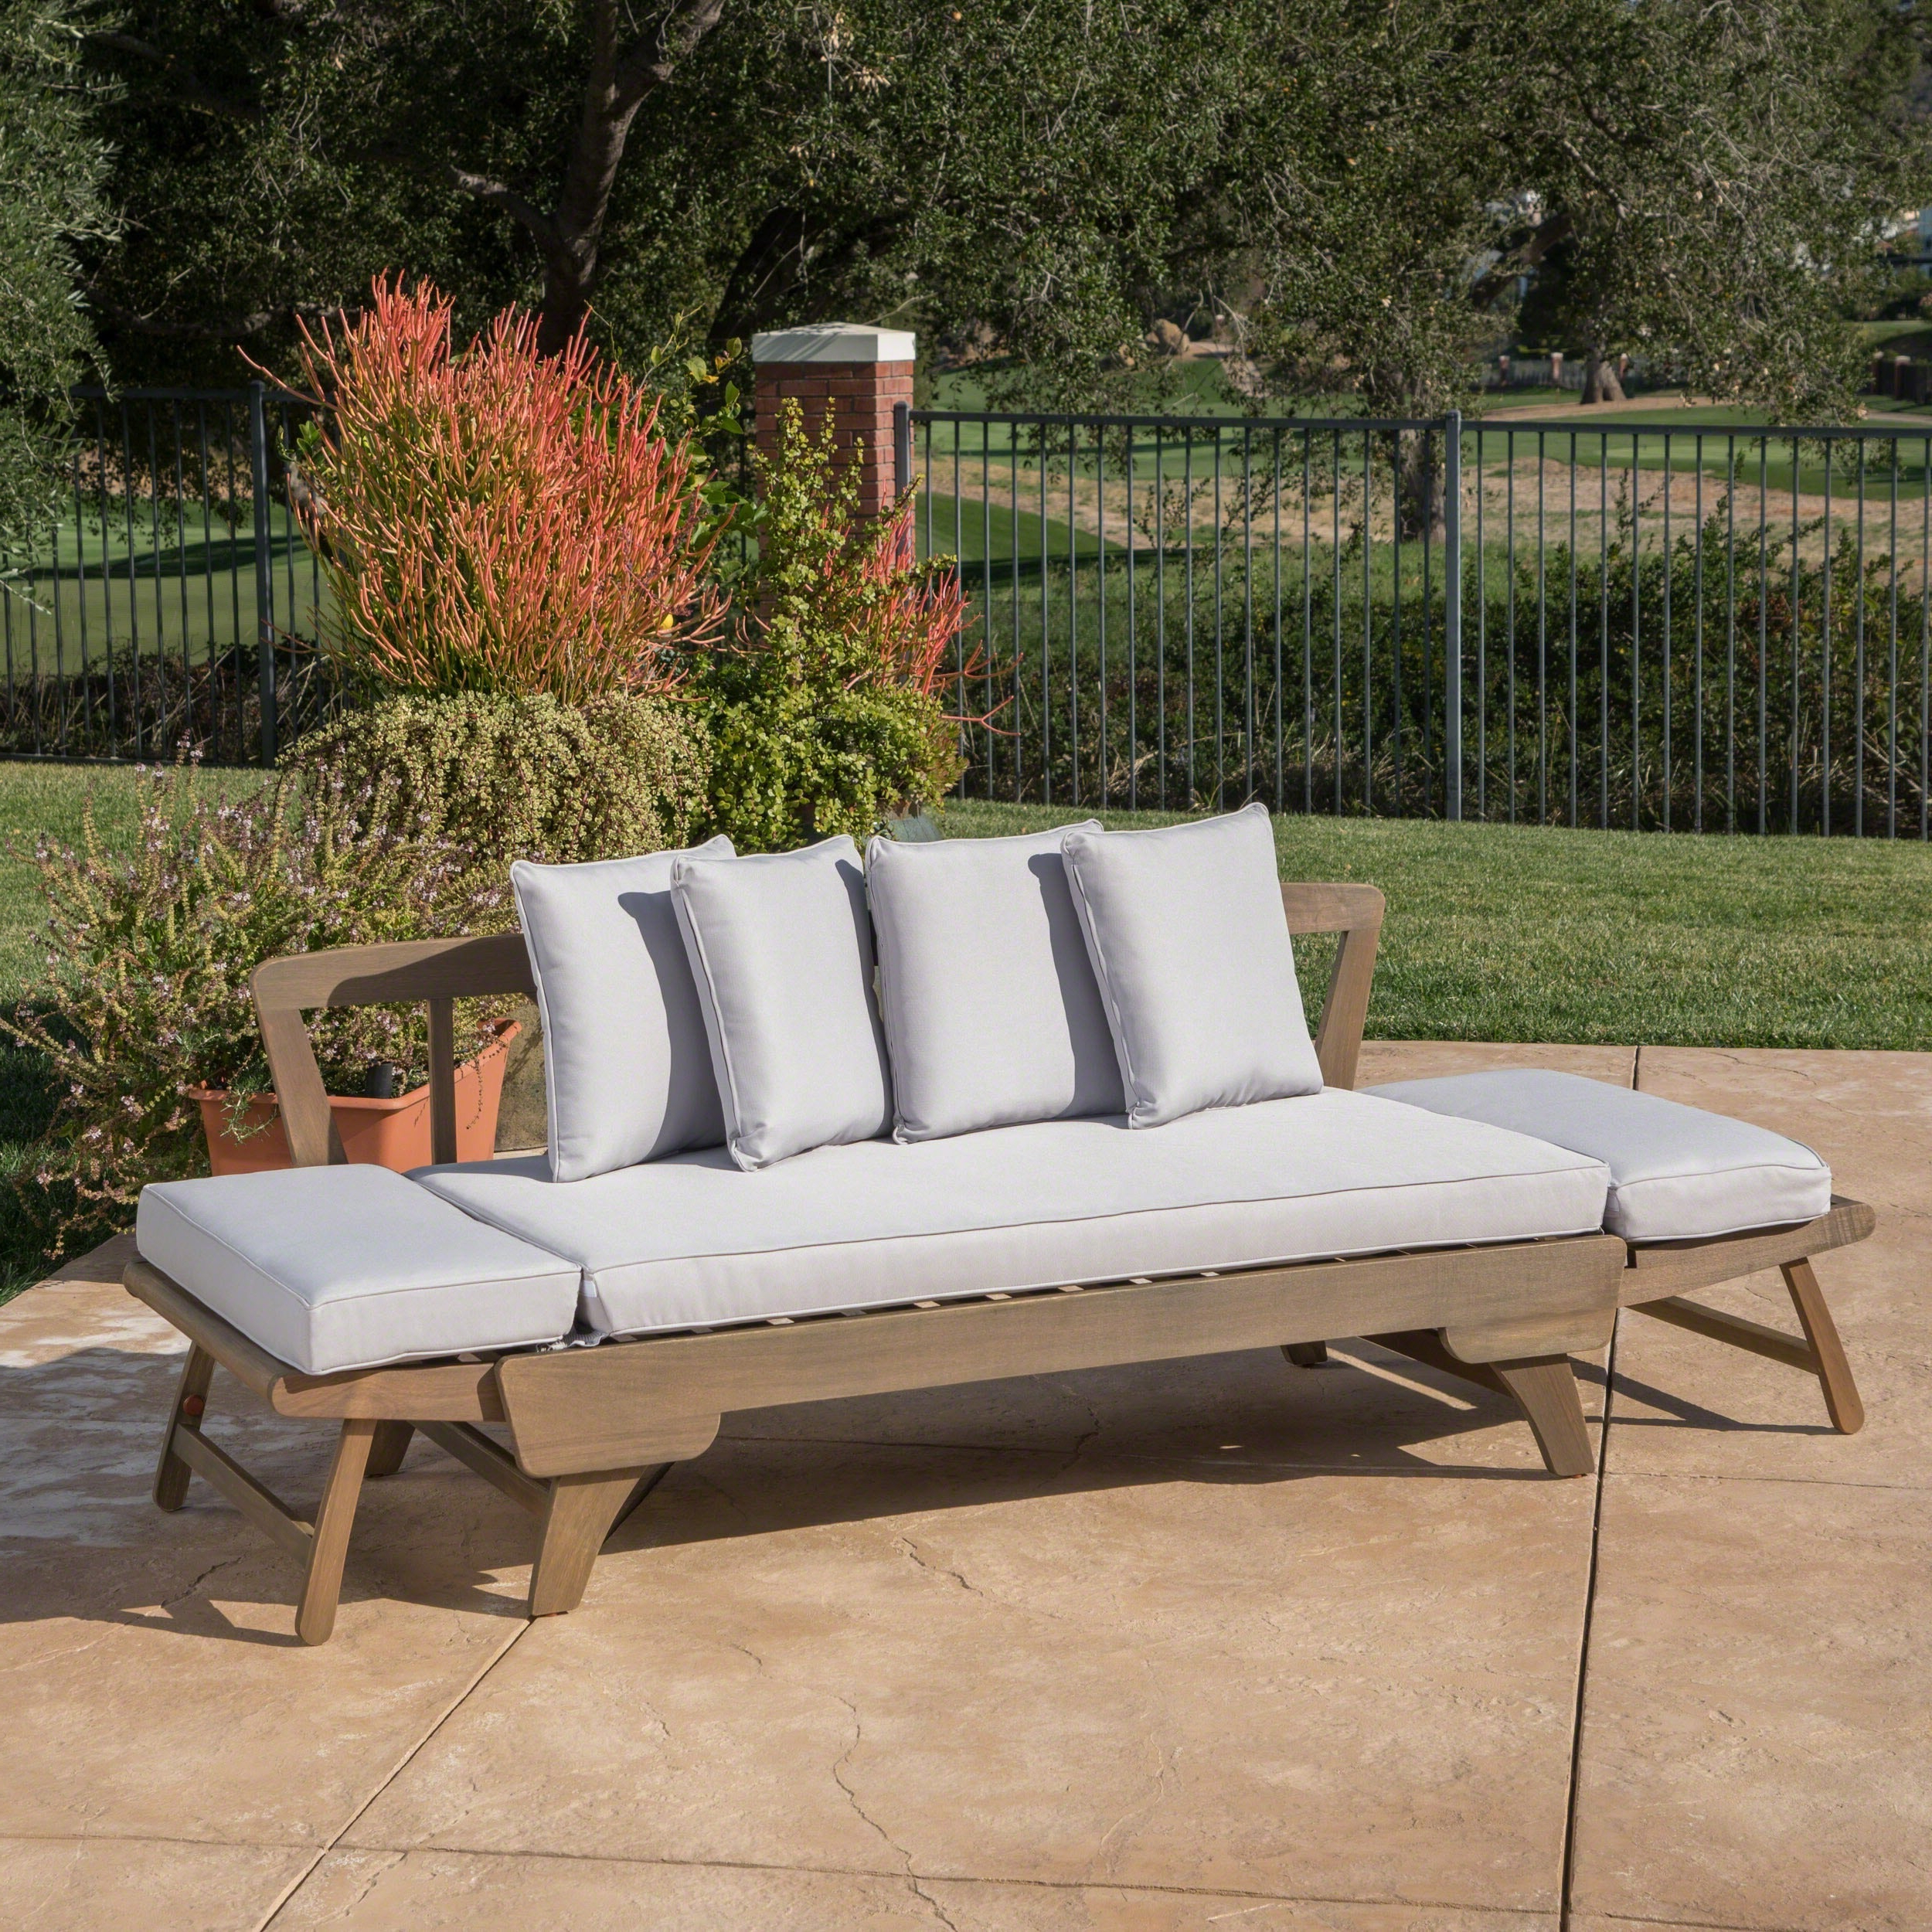 Favorite Ottavio Outdoor Wood Daybed With Cushionschristopher Knight Home Inside Fansler Patio Daybeds With Cushions (View 16 of 20)